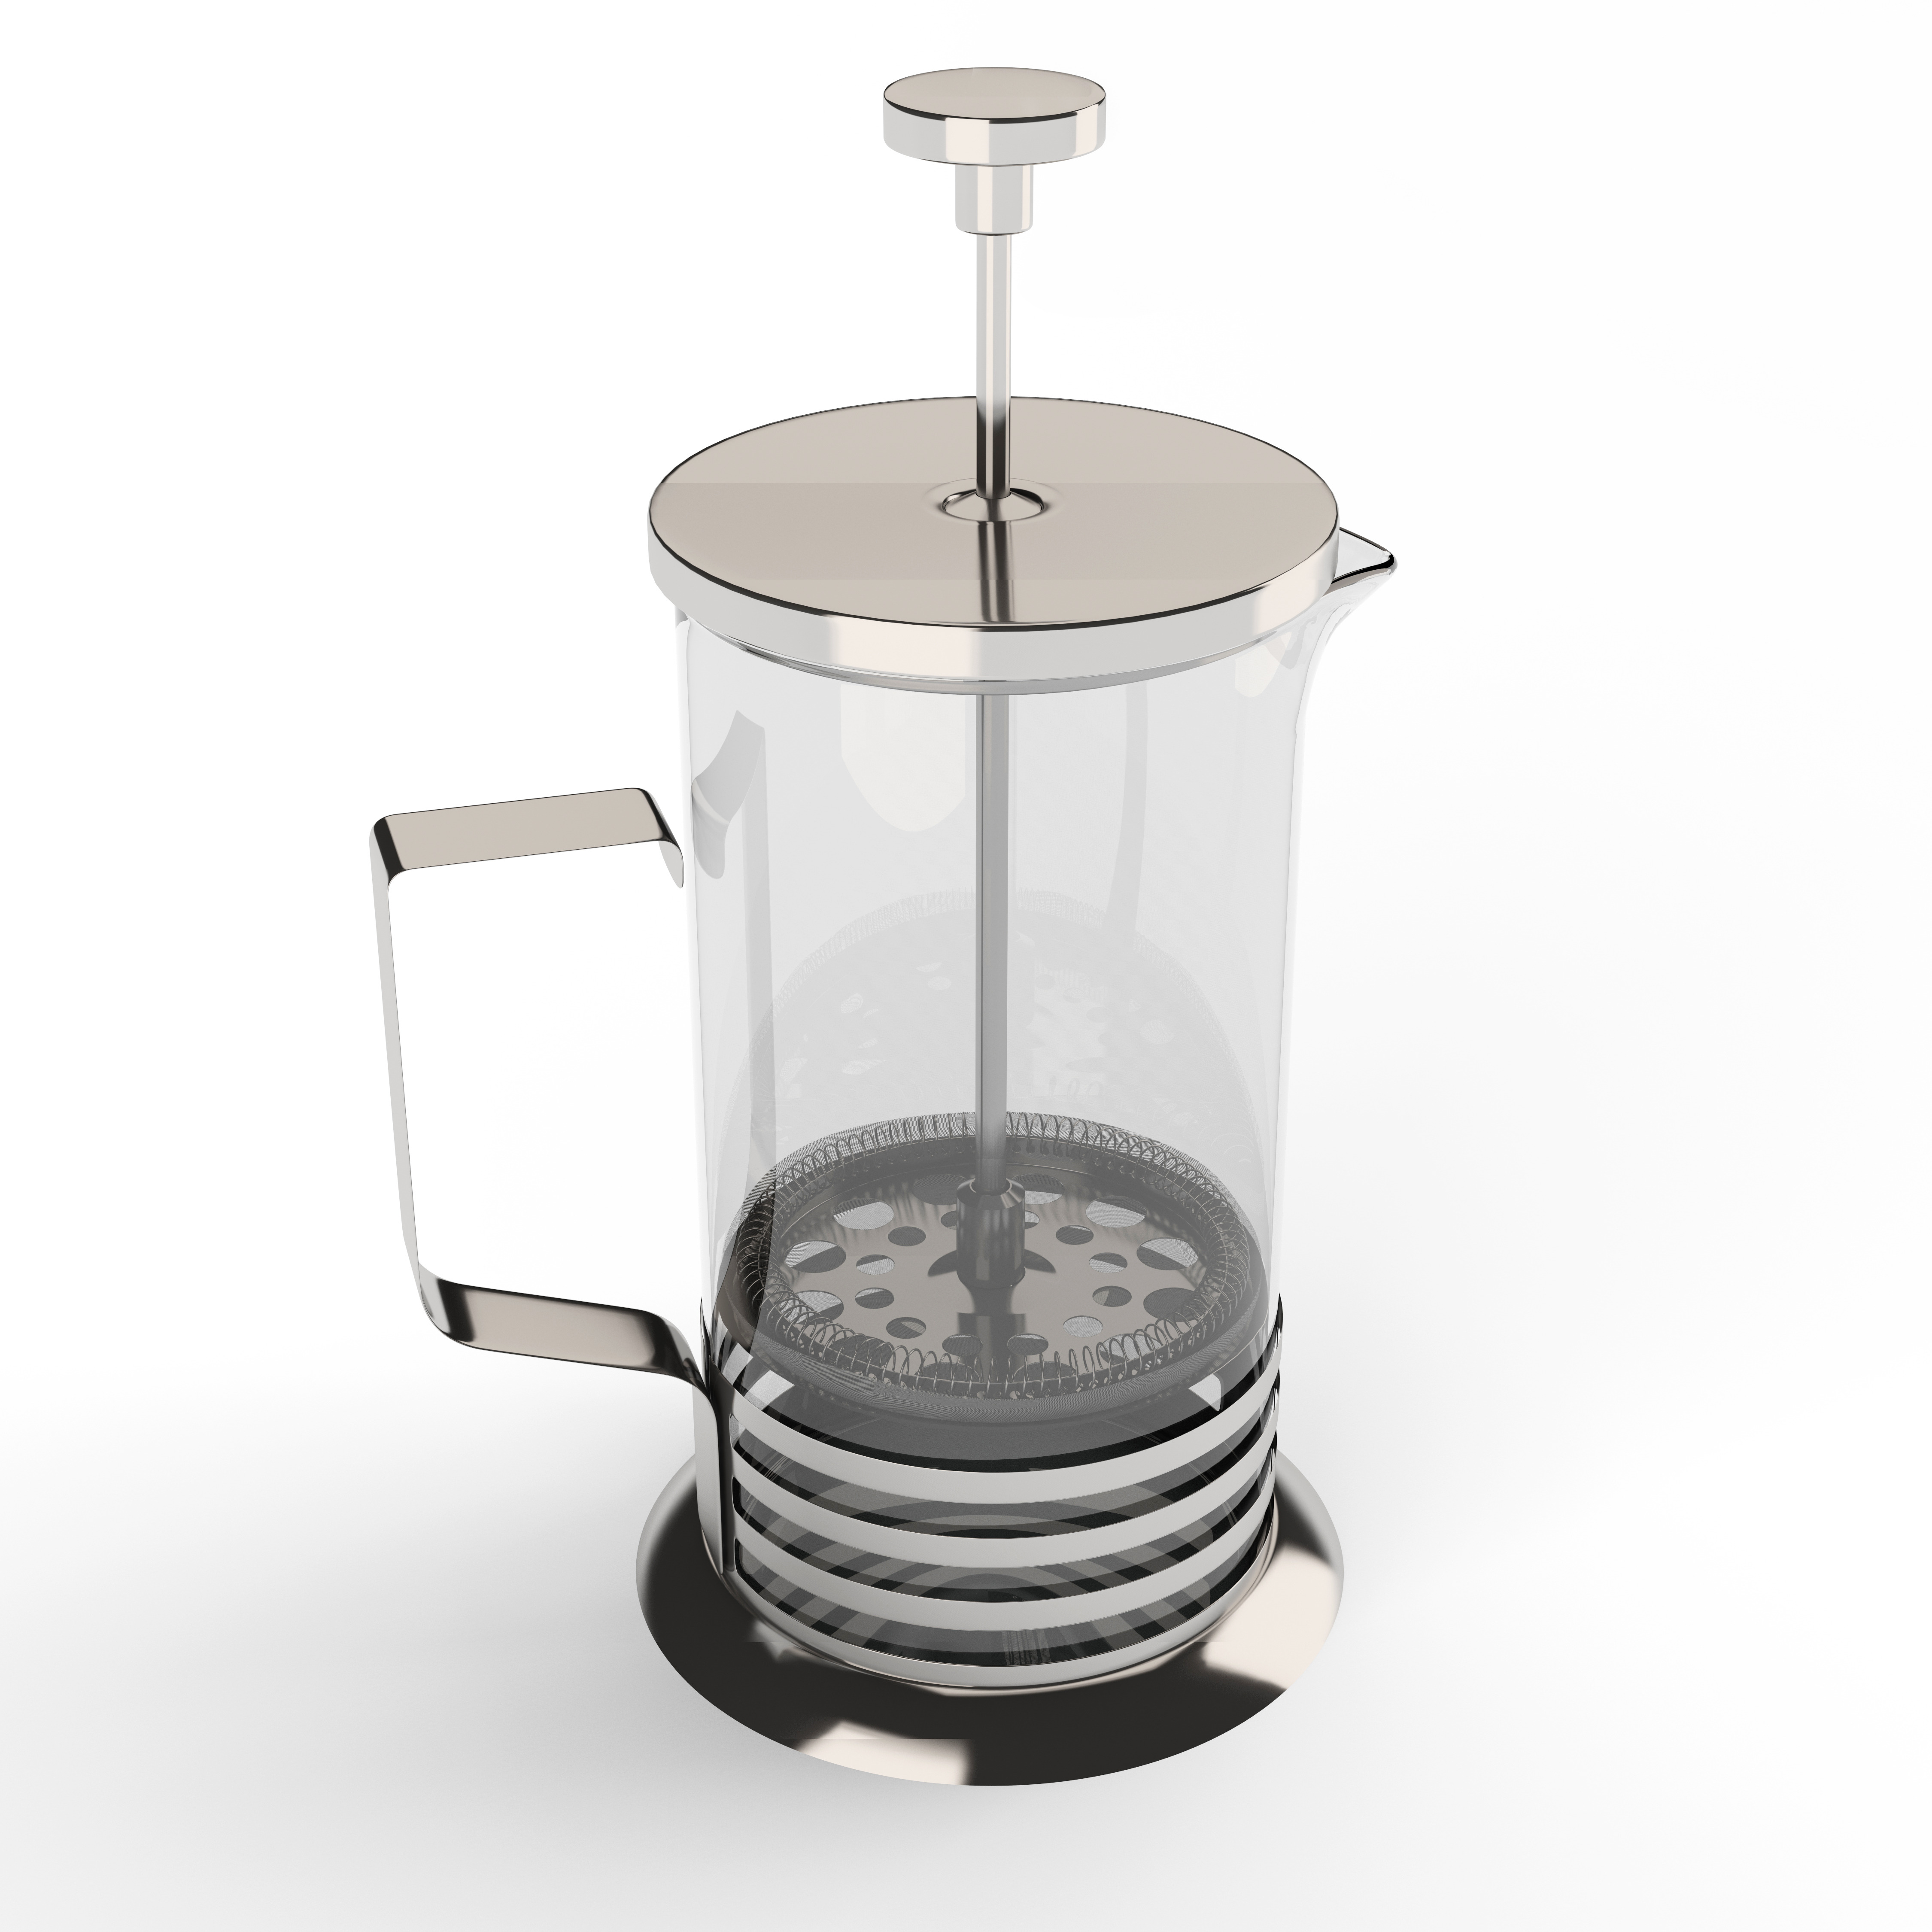 Cafetiere - 3DOcean Item for Sale